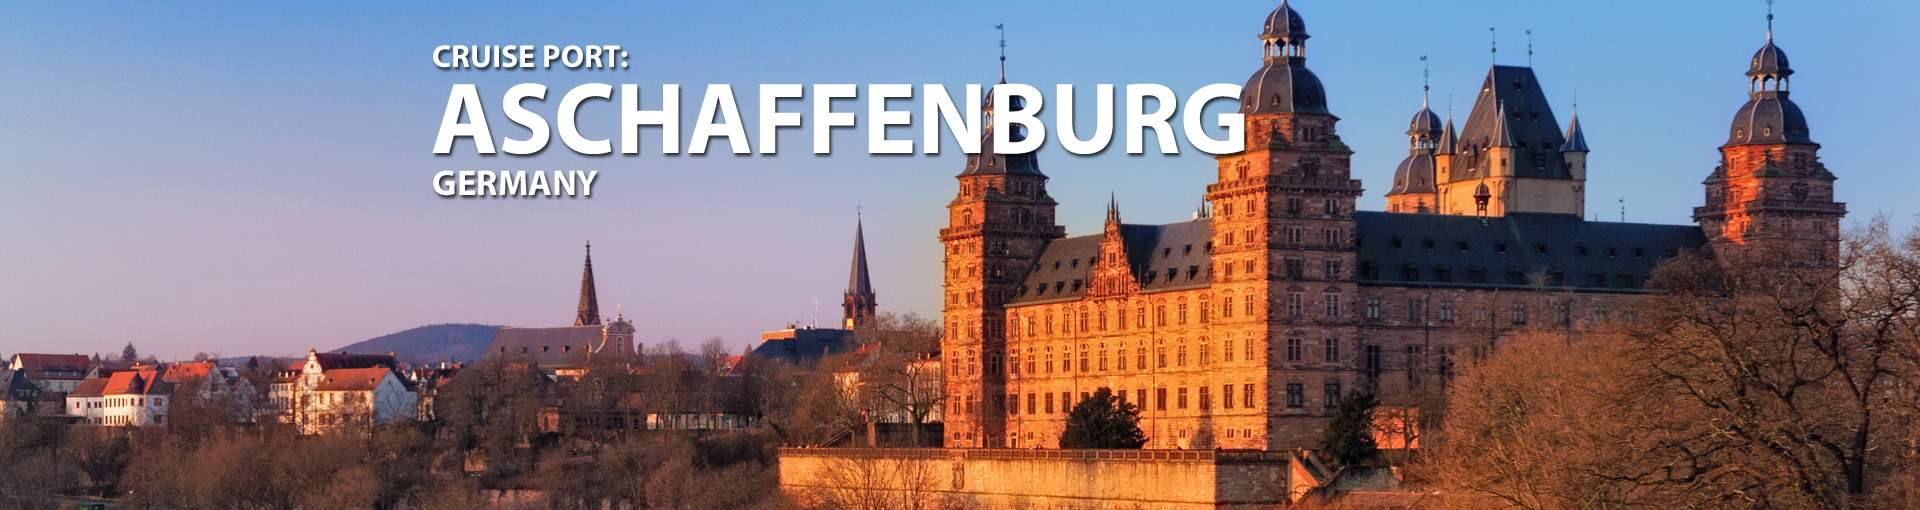 Cruise s to Aschaffenburg, Germany